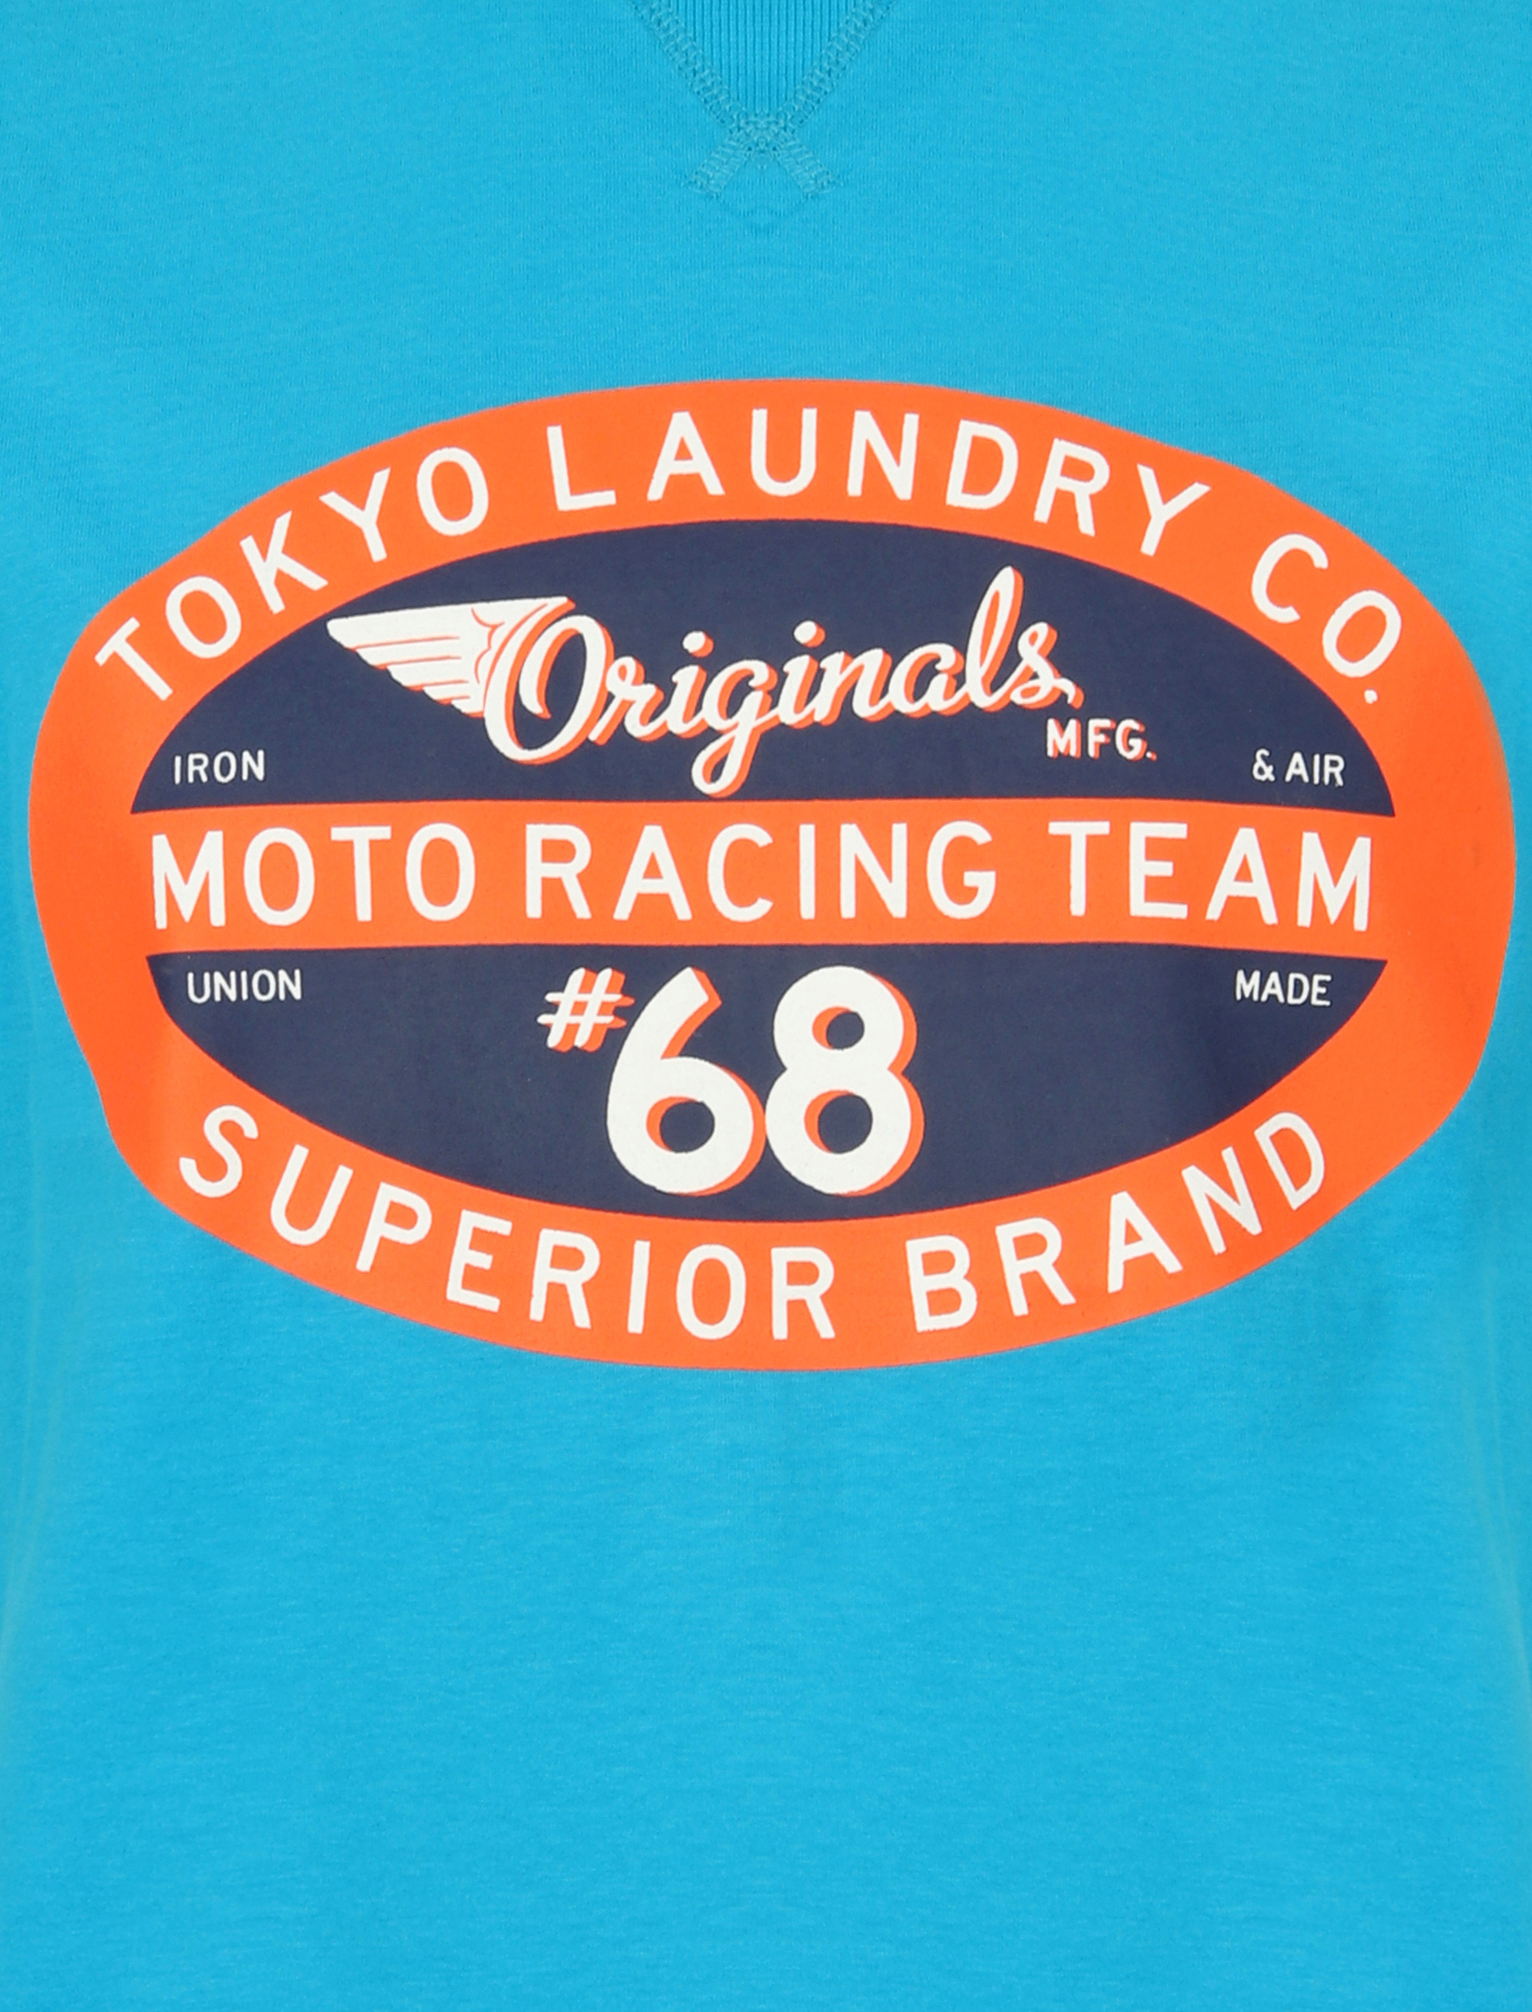 Tokyo-Laundry-Mens-Crew-Neck-T-Shirt-Vintage-Retro-Graphic-Print-Top-Size-S-XXL miniatura 16